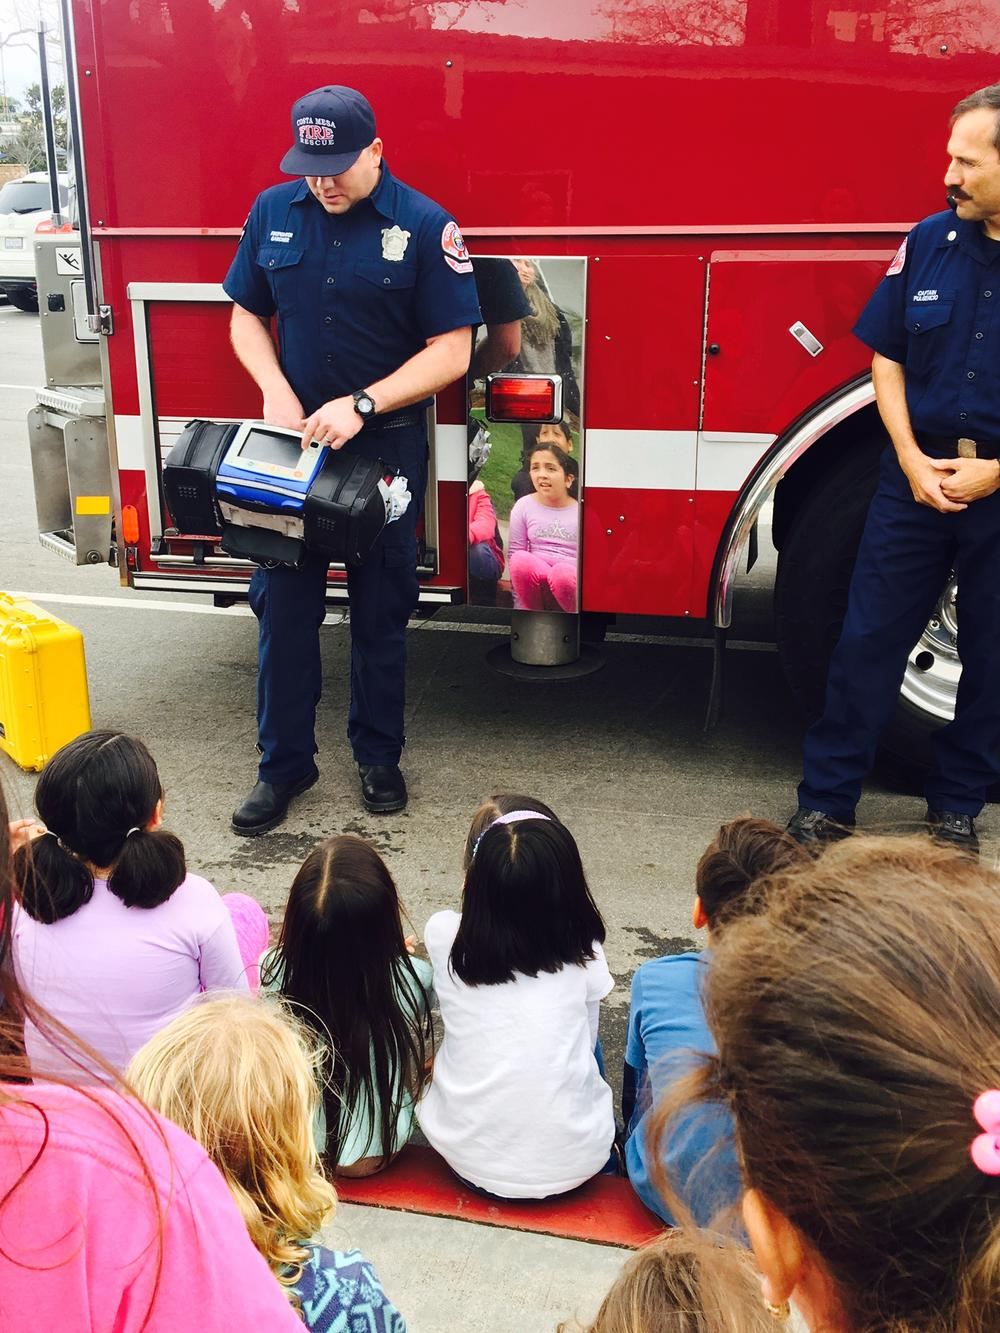 Firefighter Displays Equipment for students